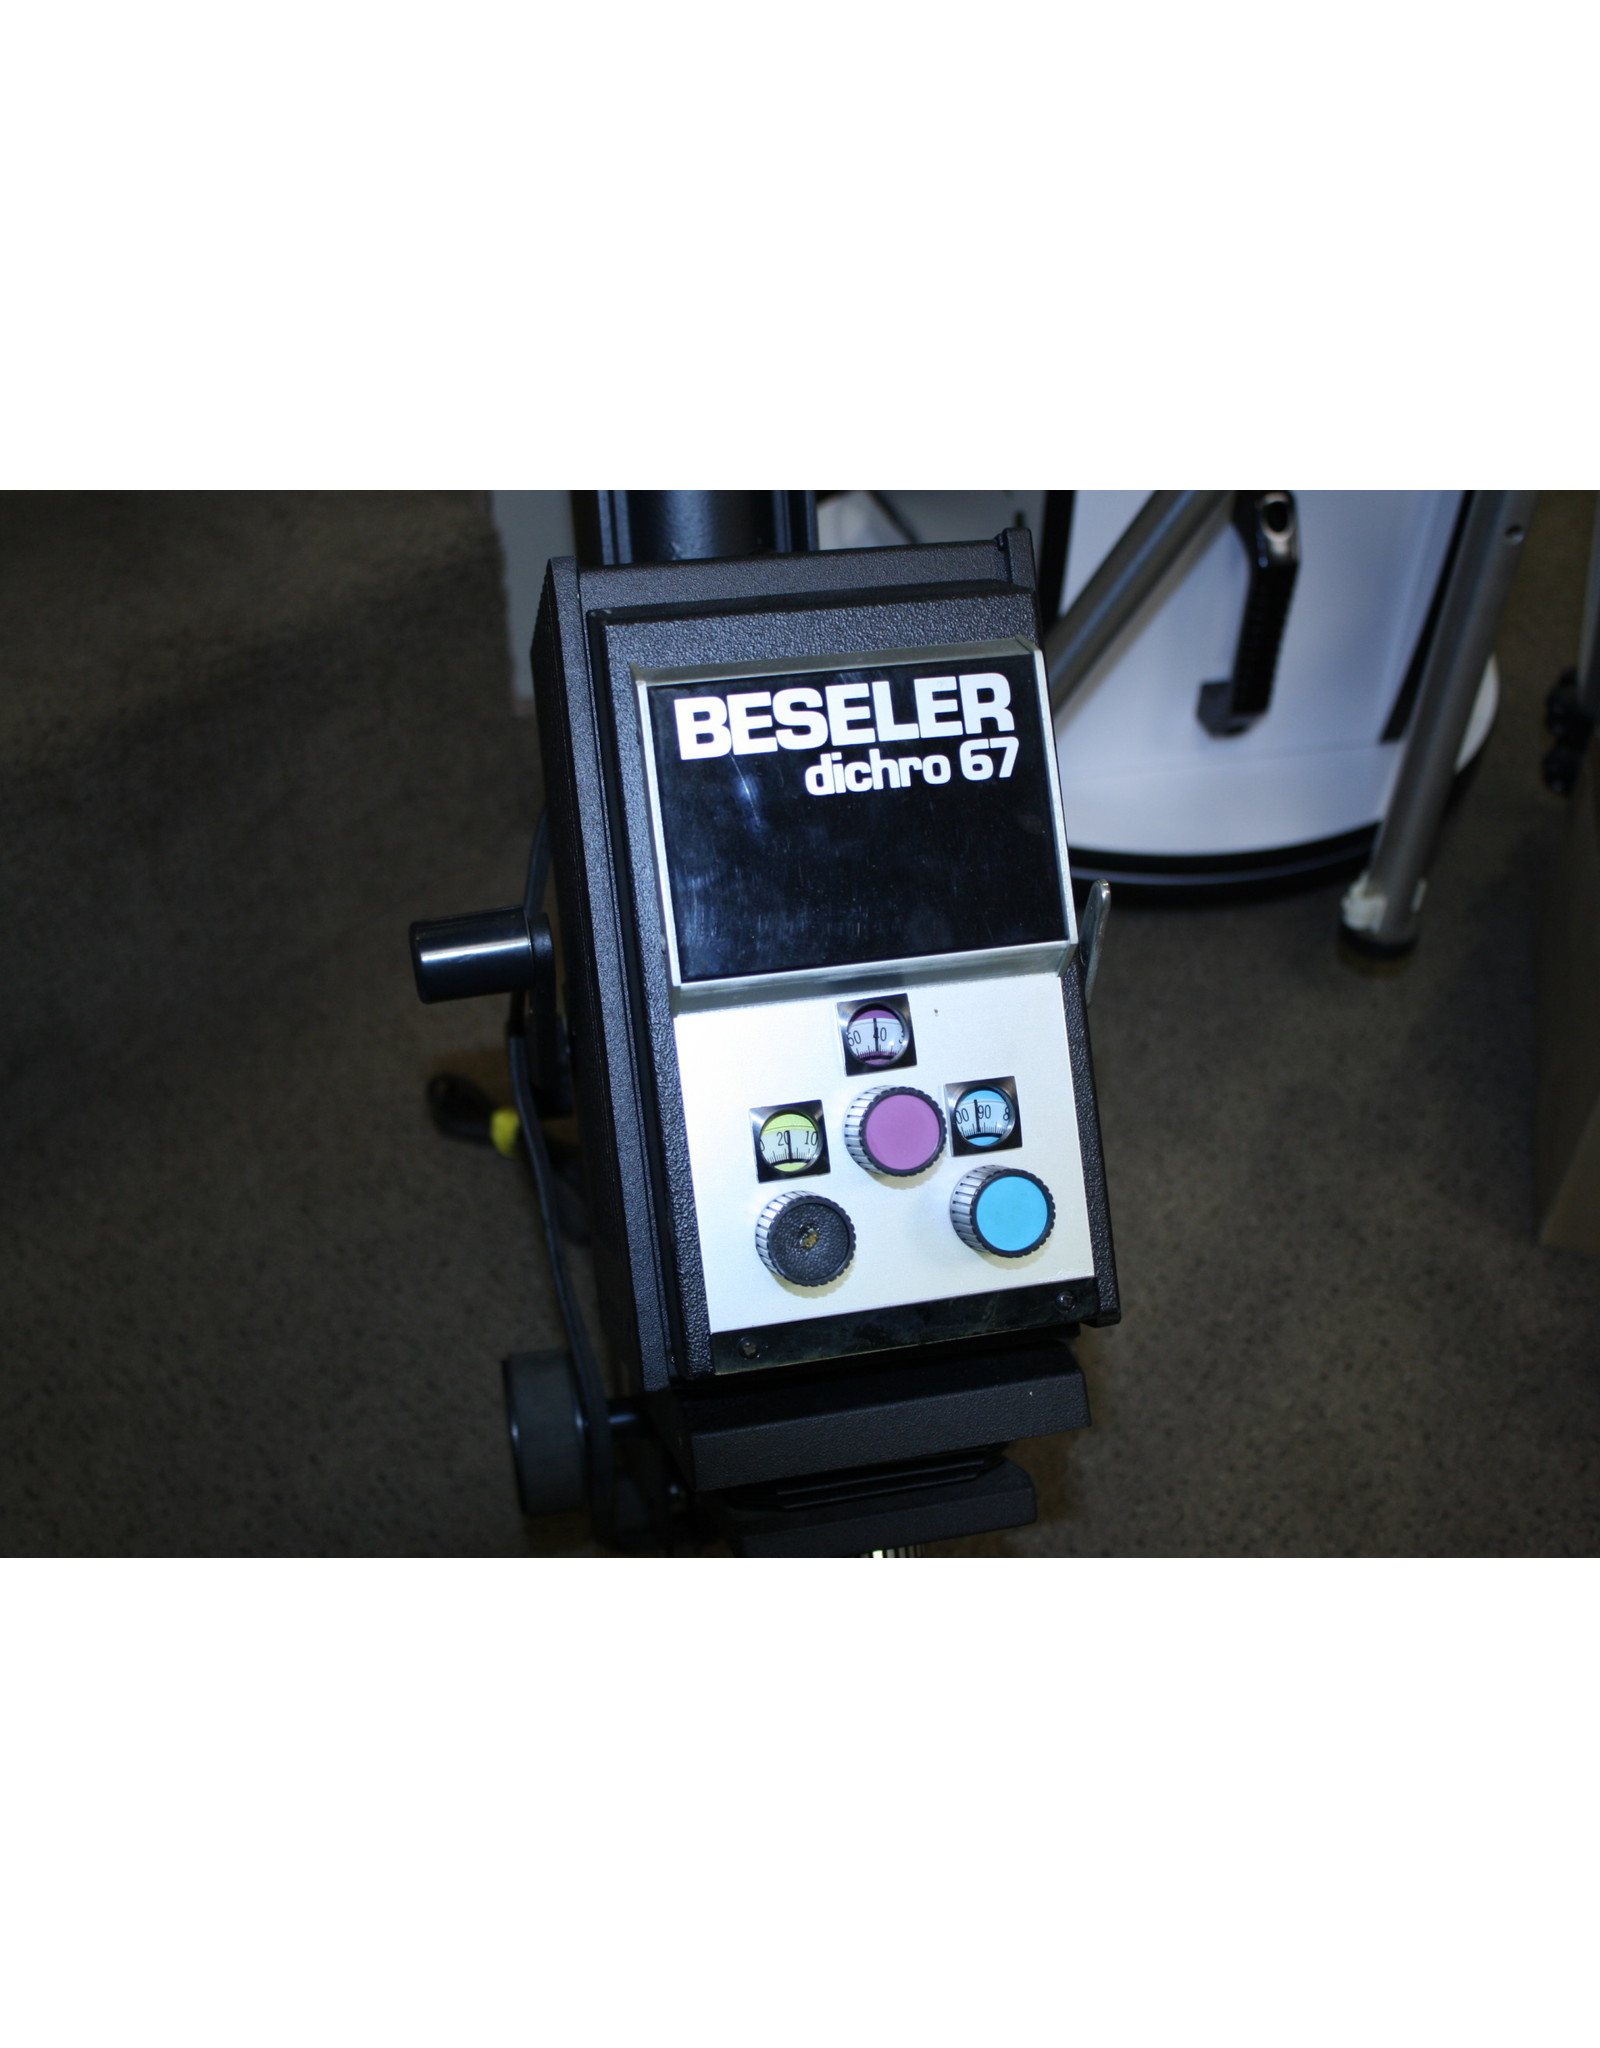 Beseler Dichro 67 with 6x7 Diffusion Insert, lensboard, & Beslar 50mm lens and Rail System